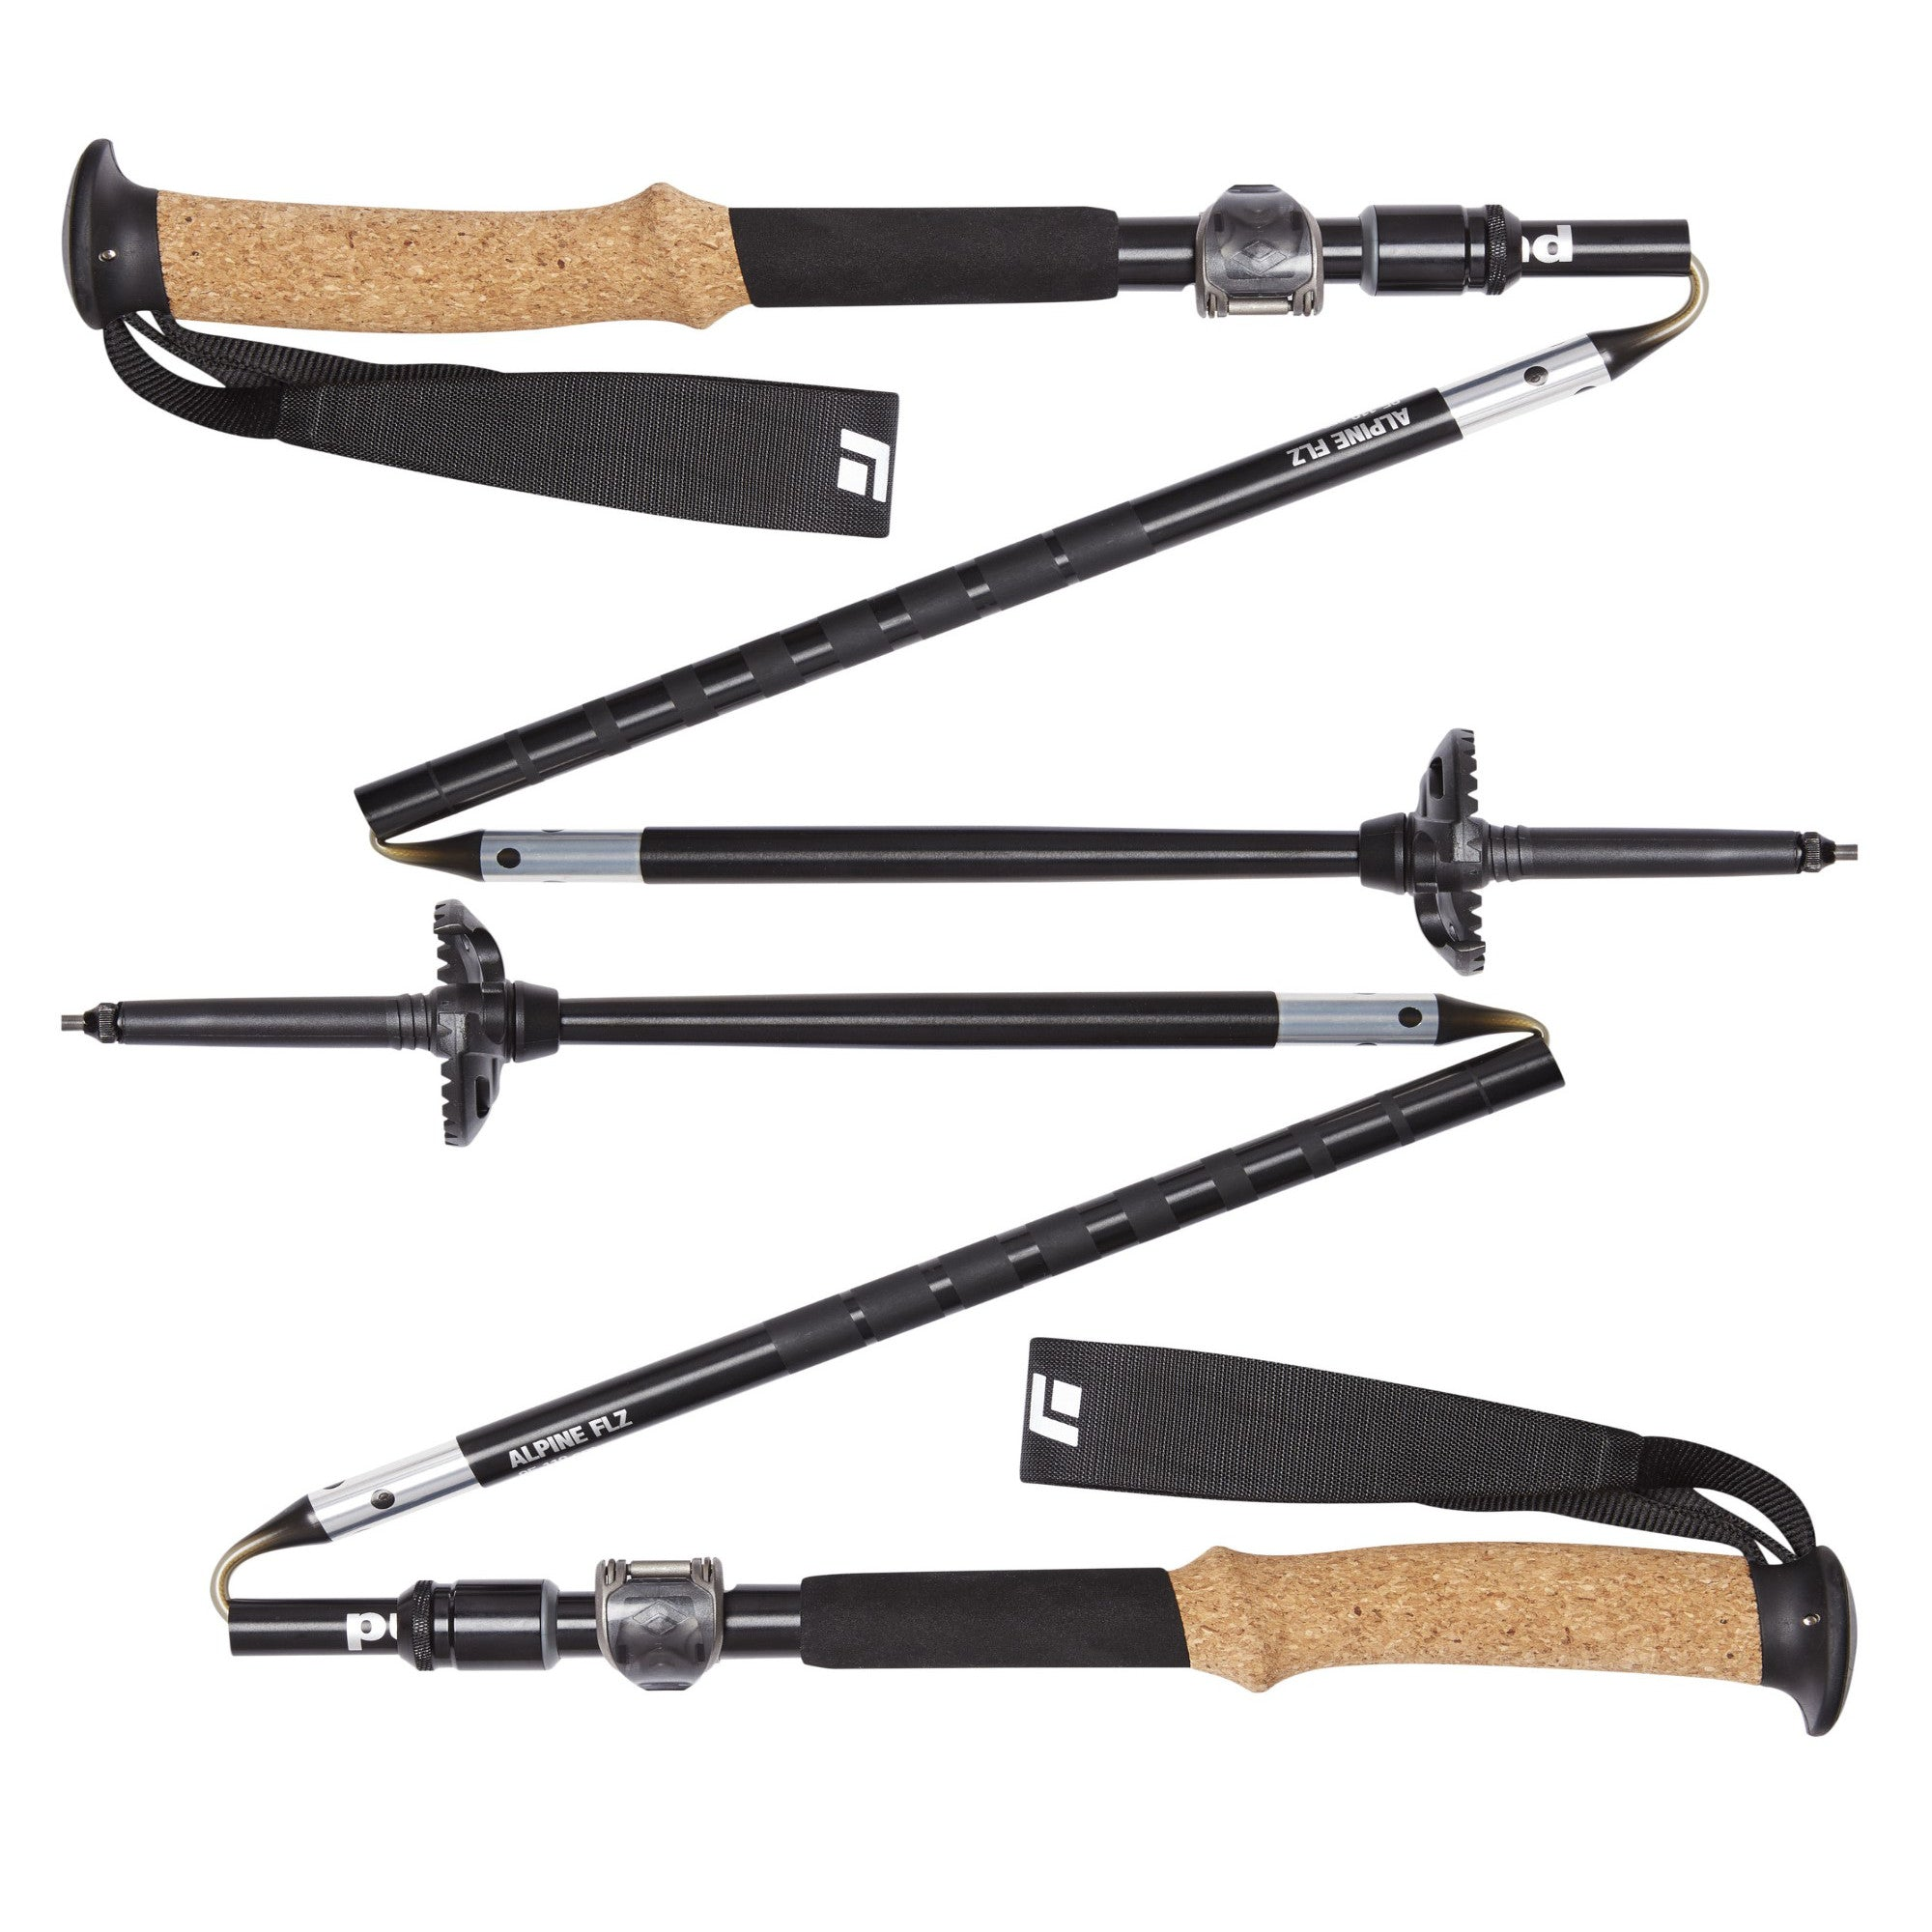 Black Diamond Alpine FLZ trekking poles, shown in a pair collapsed